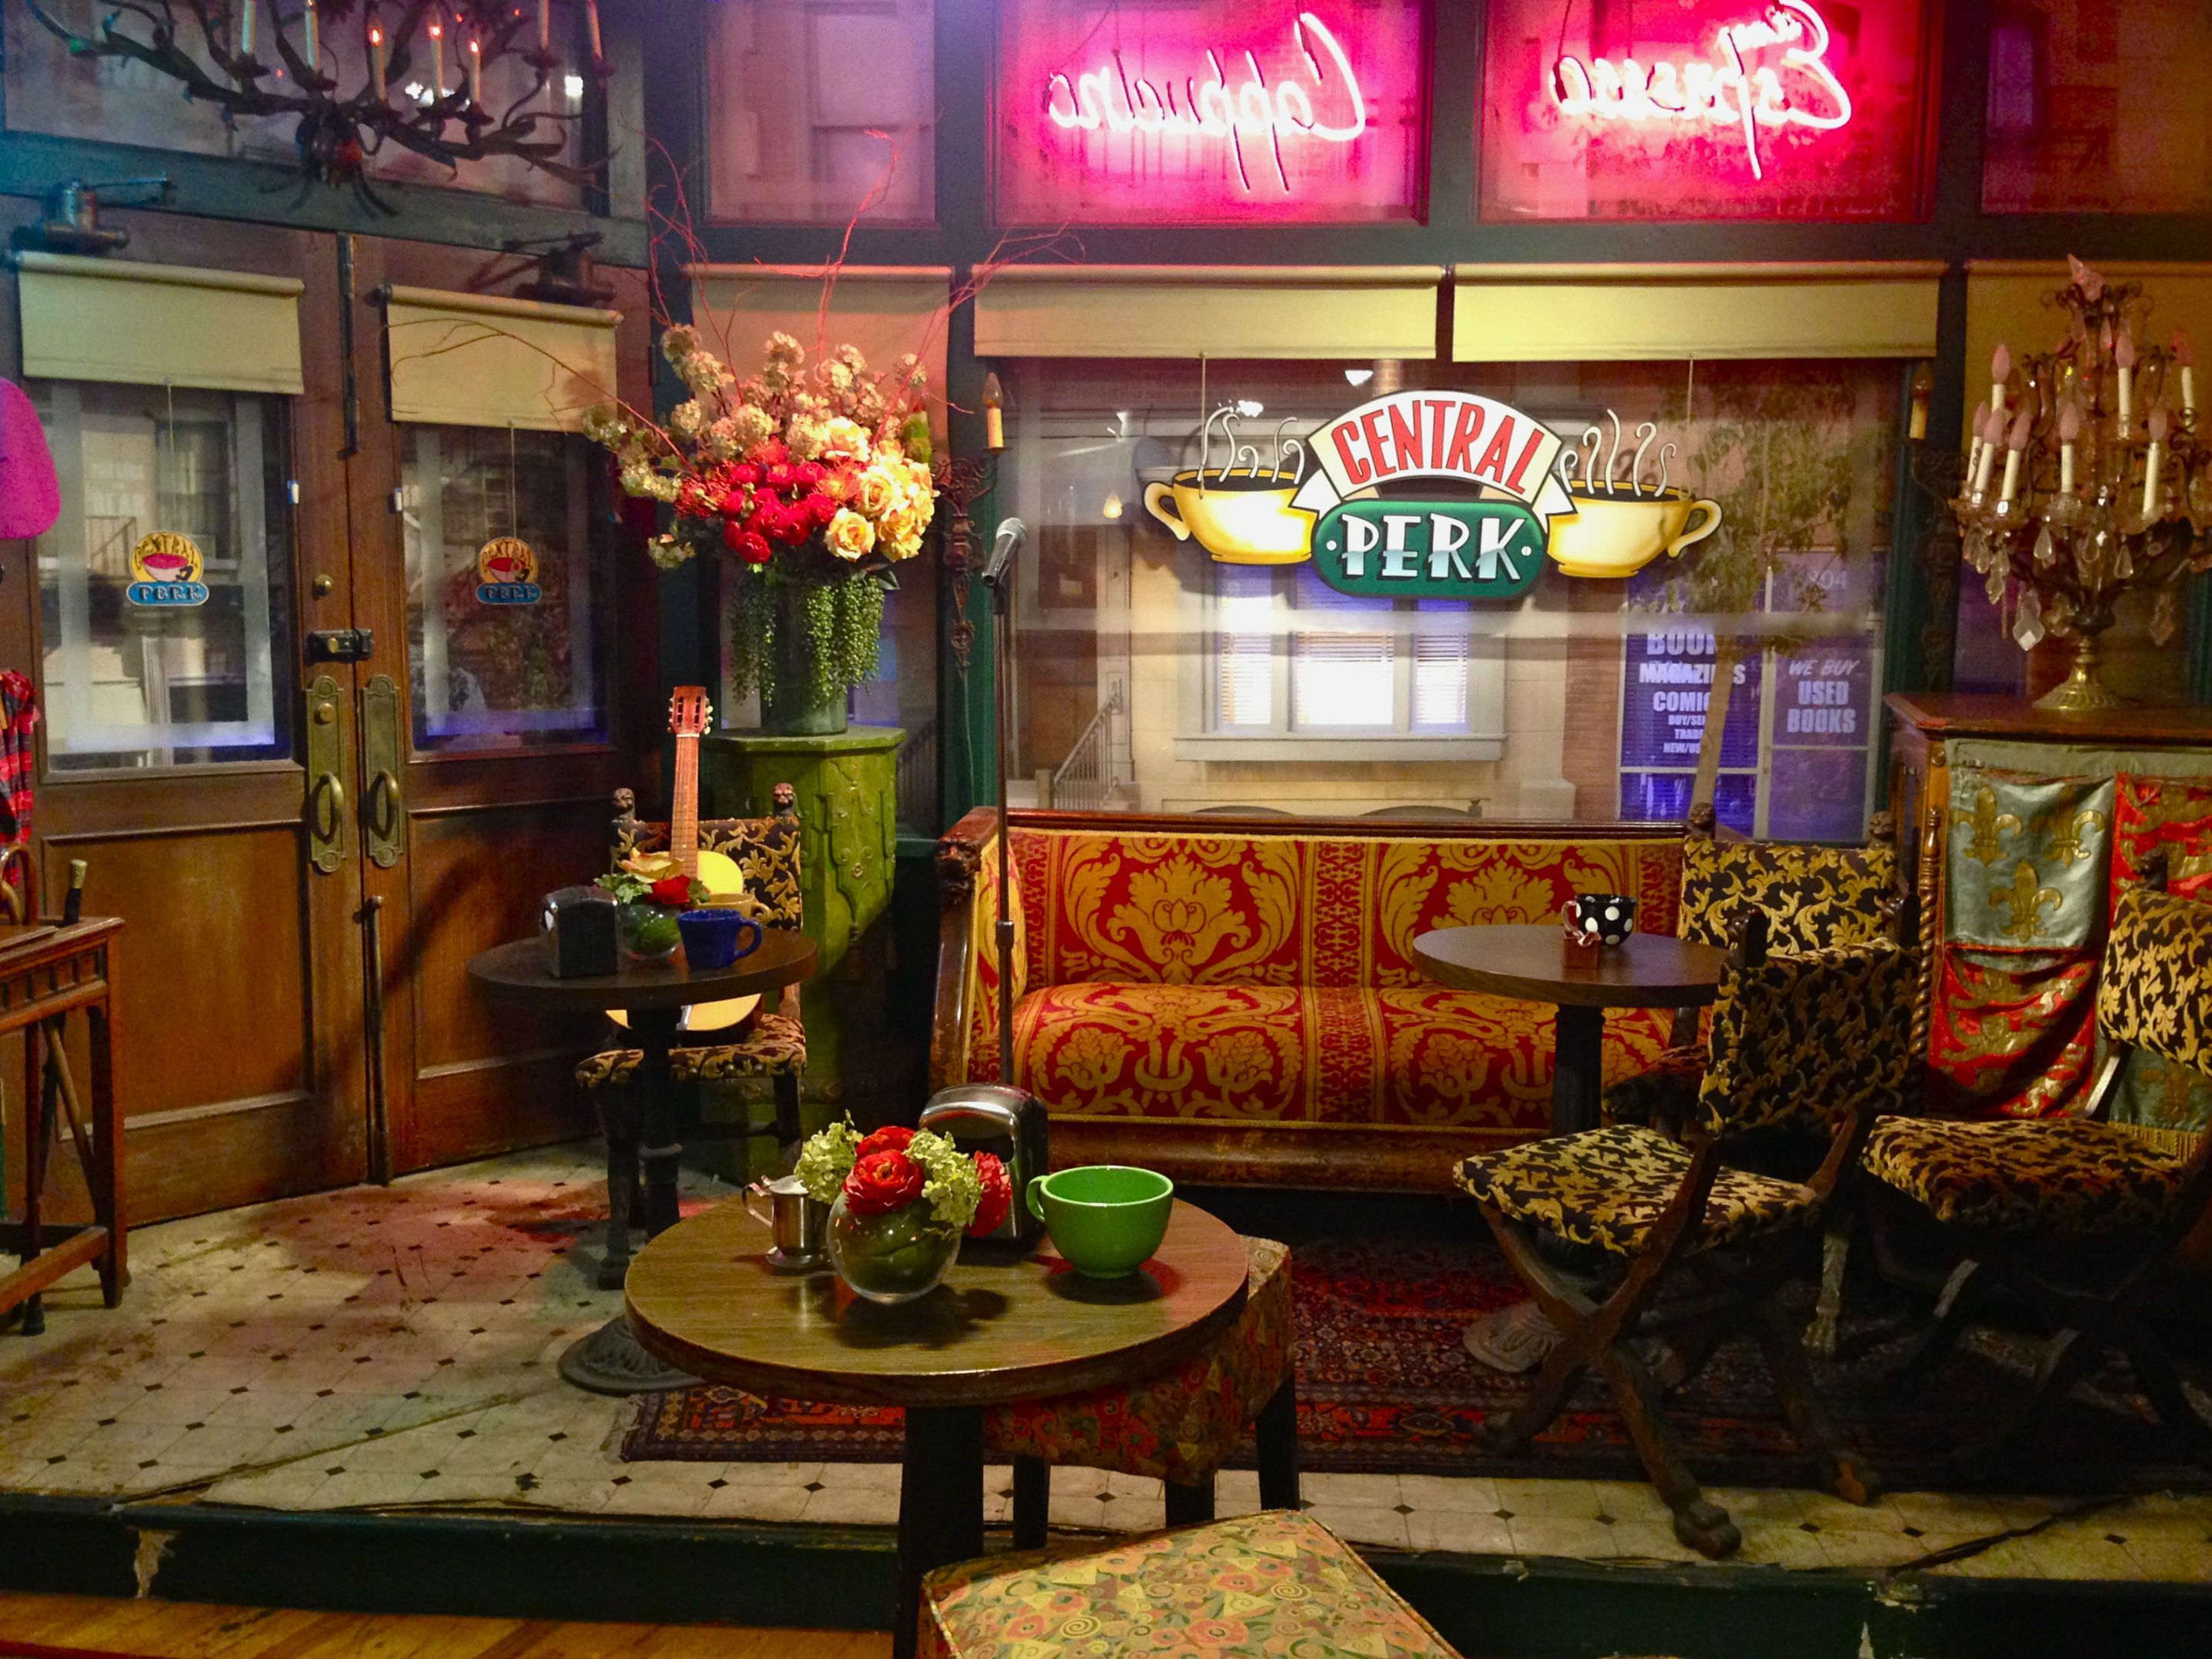 2hebhoa Jpg 2876 2157 Friends Central Perk Central Perk Diner Aesthetic